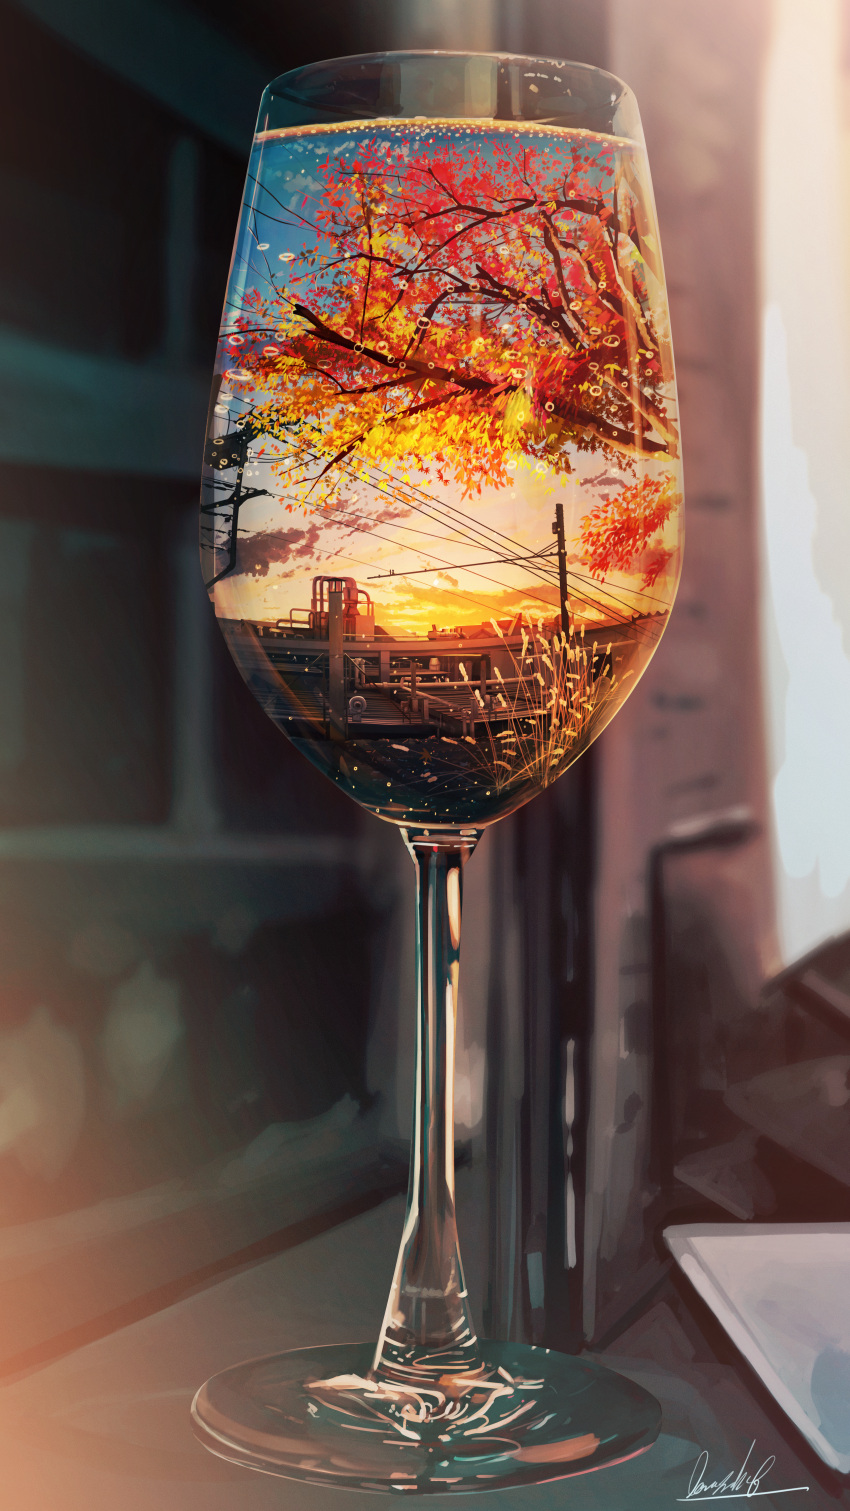 absurdres artist_name autumn_leaves banishment blurry blurry_background branch clouds commentary_request cup depth_of_field drinking_glass highres huge_filesize leaf no_humans original power_lines reflection scenery sky still_life sunset tree wine_glass